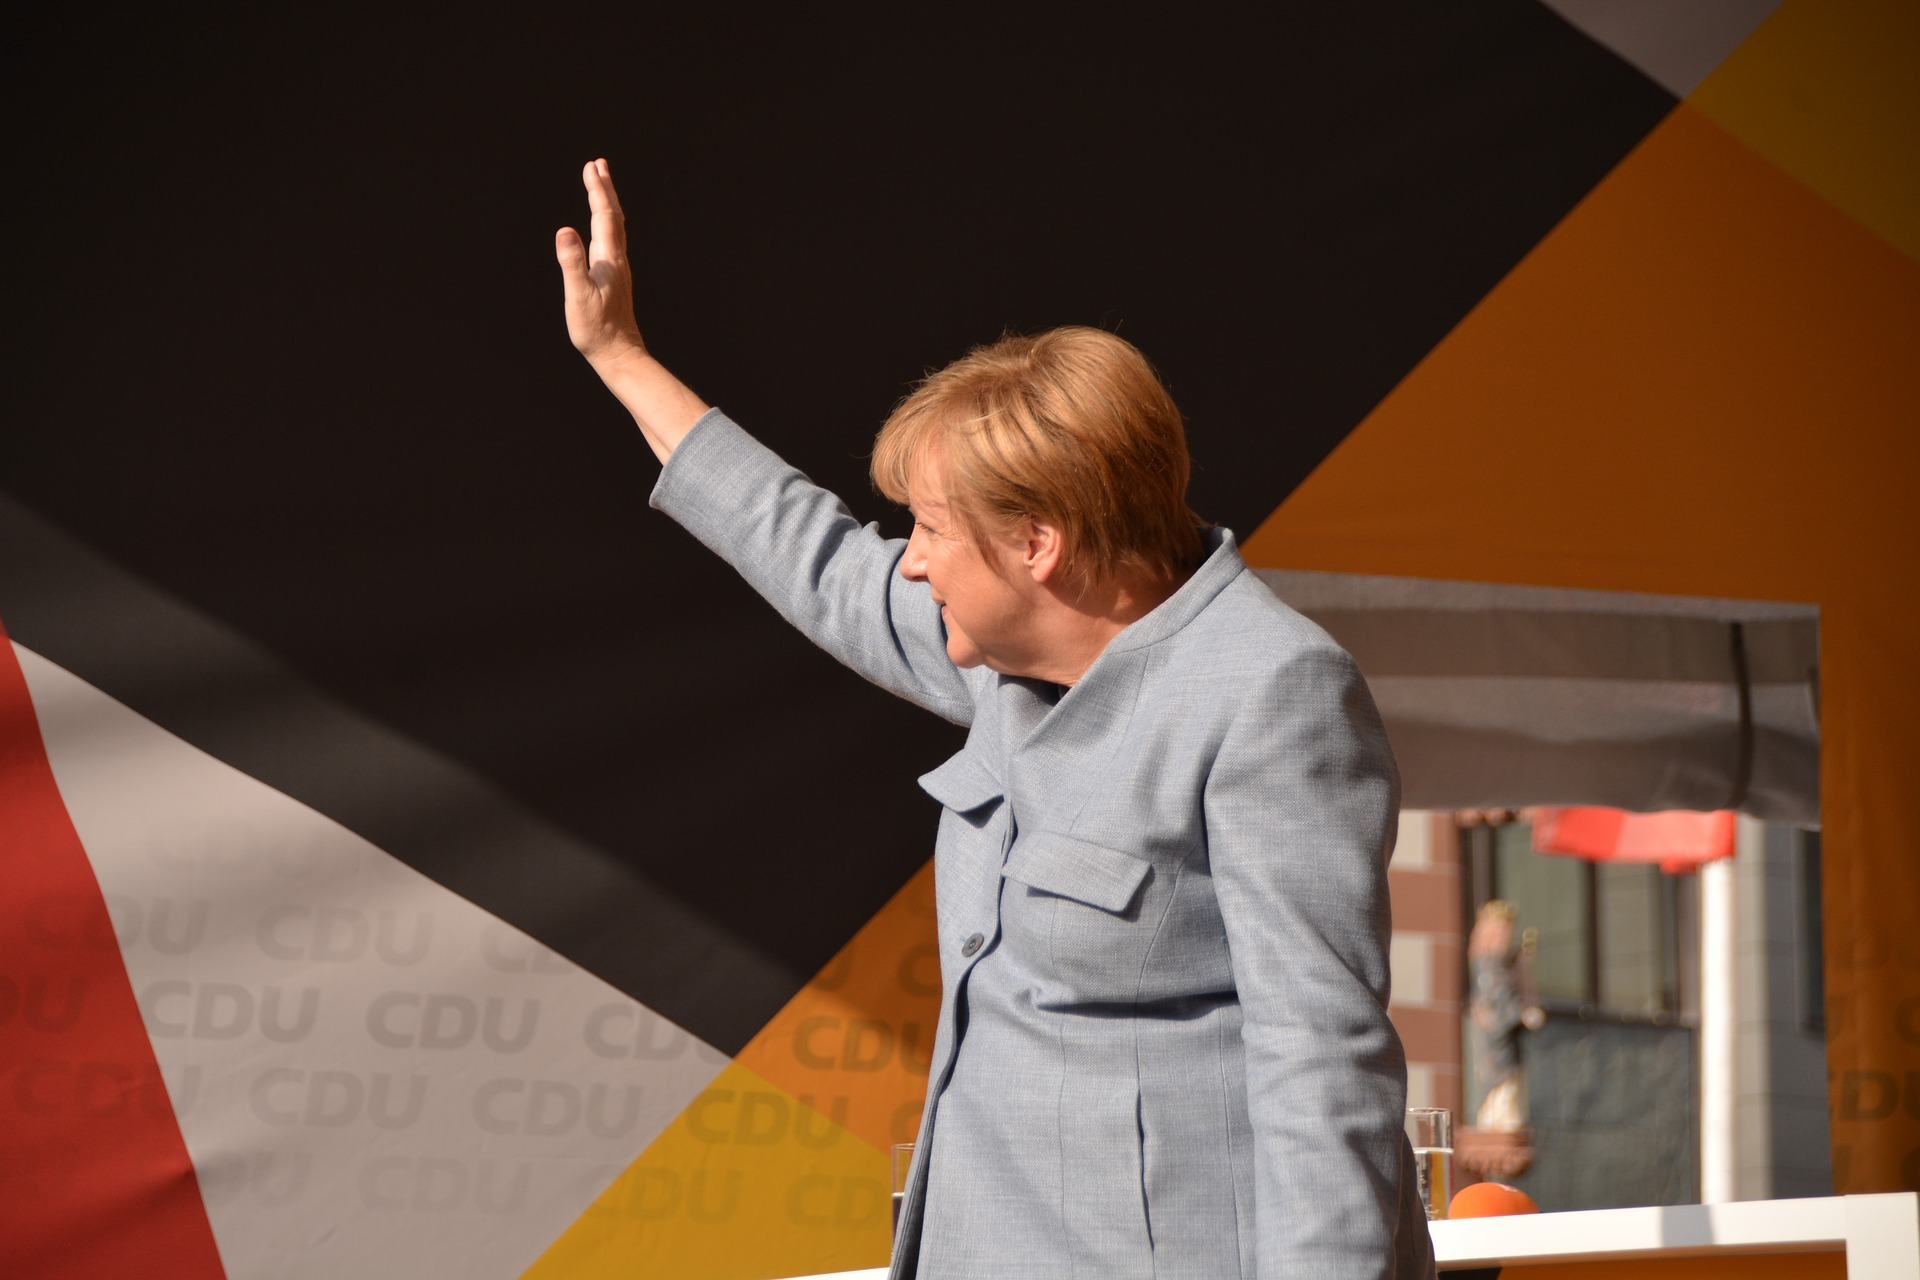 Merkel, fantareis, https://pixabay.com/it/photos/merkel-cancelliere-angela-merkel-2906016/, CC0